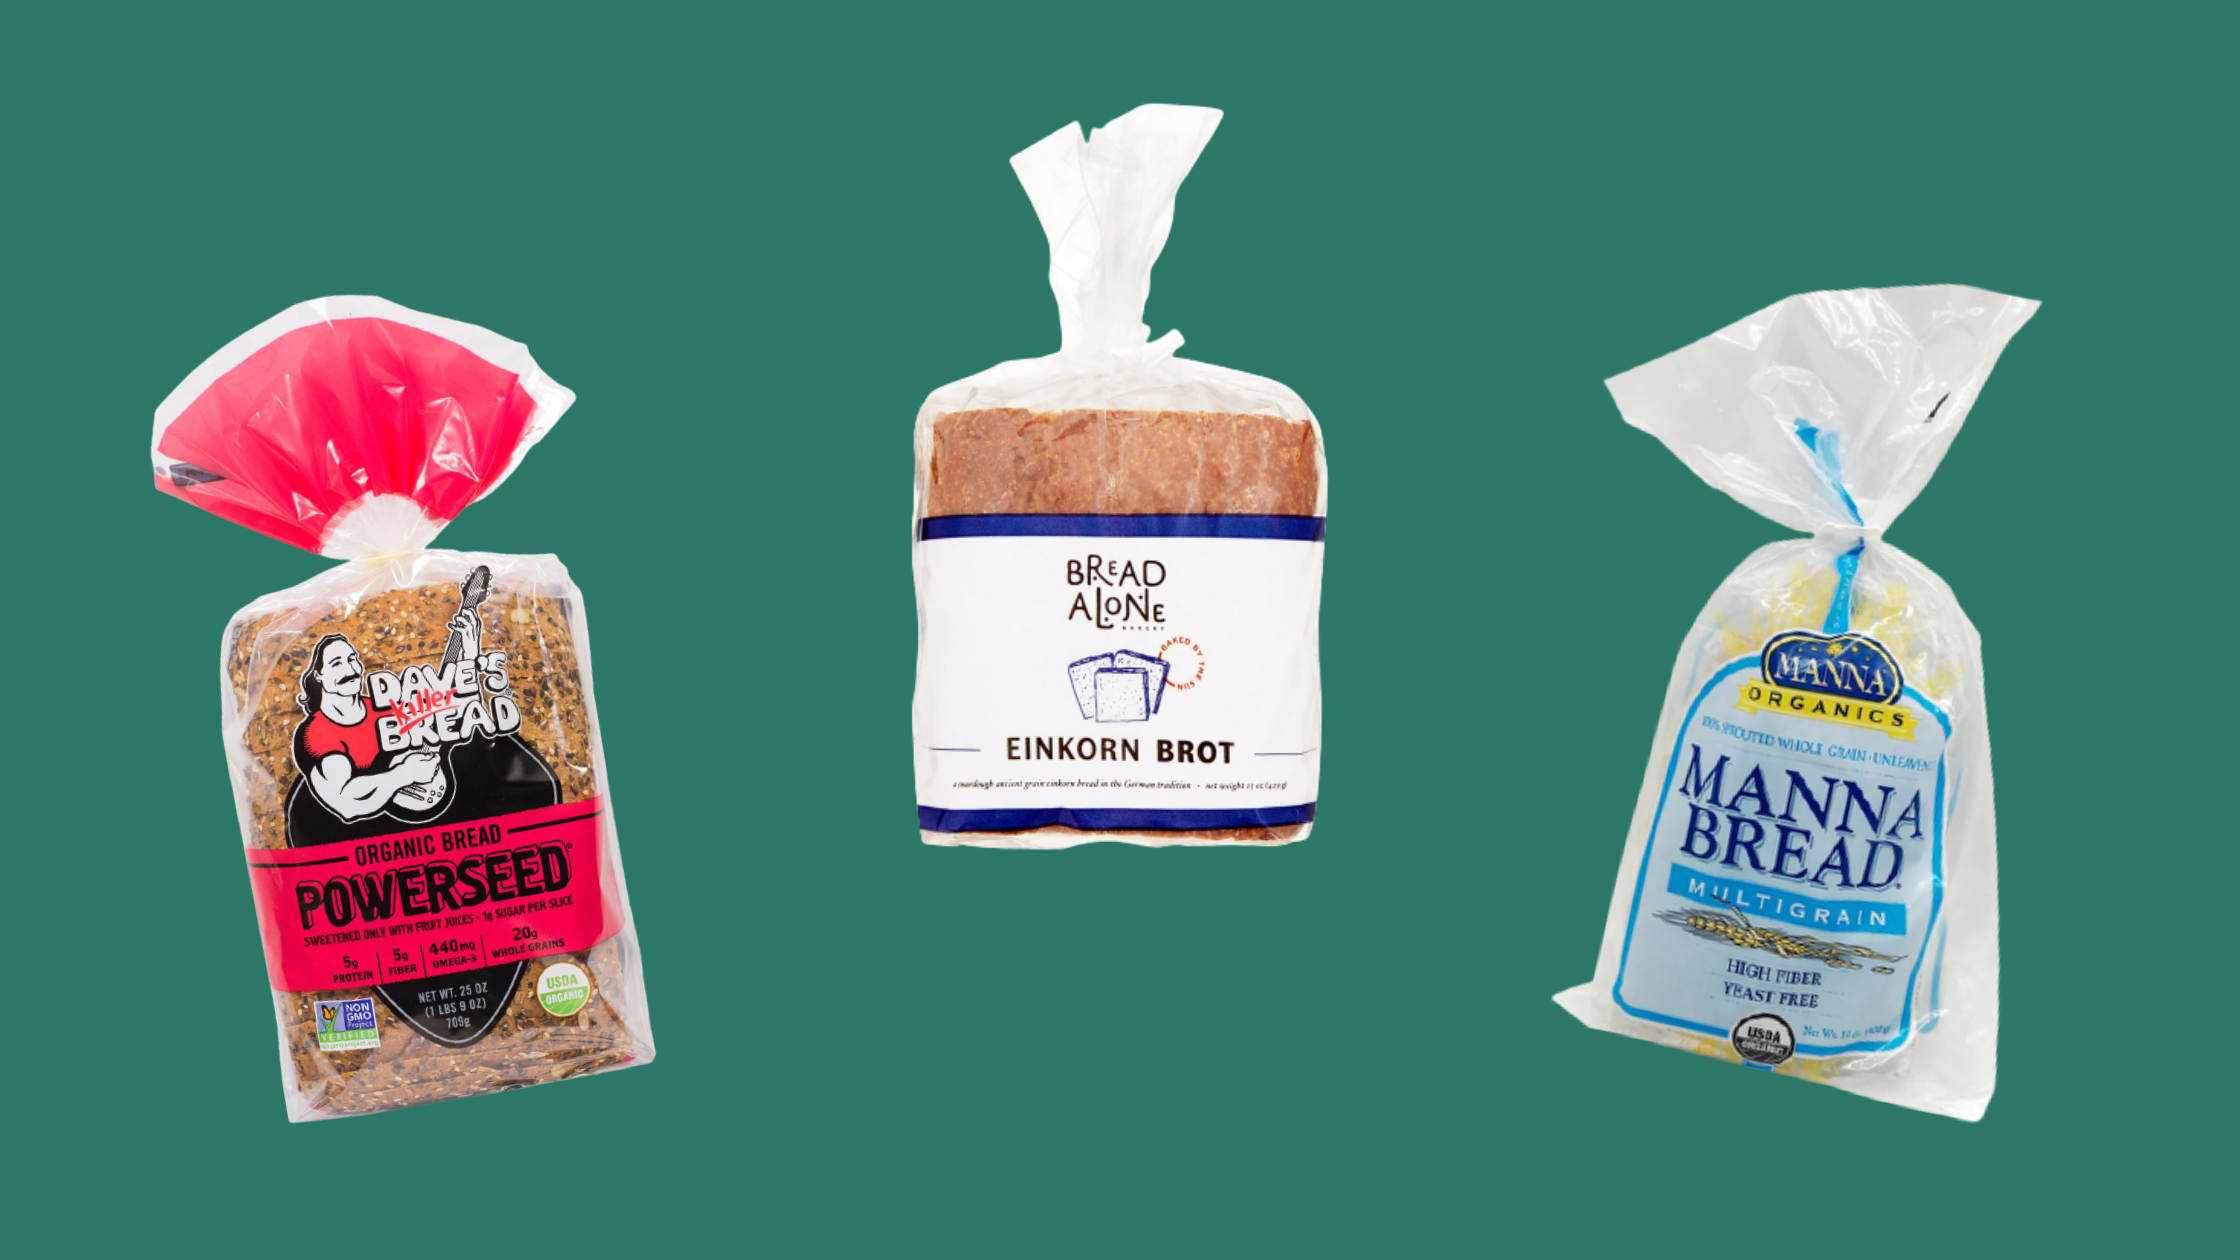 12 High Protein Bread Options To Add To Your Grocery List